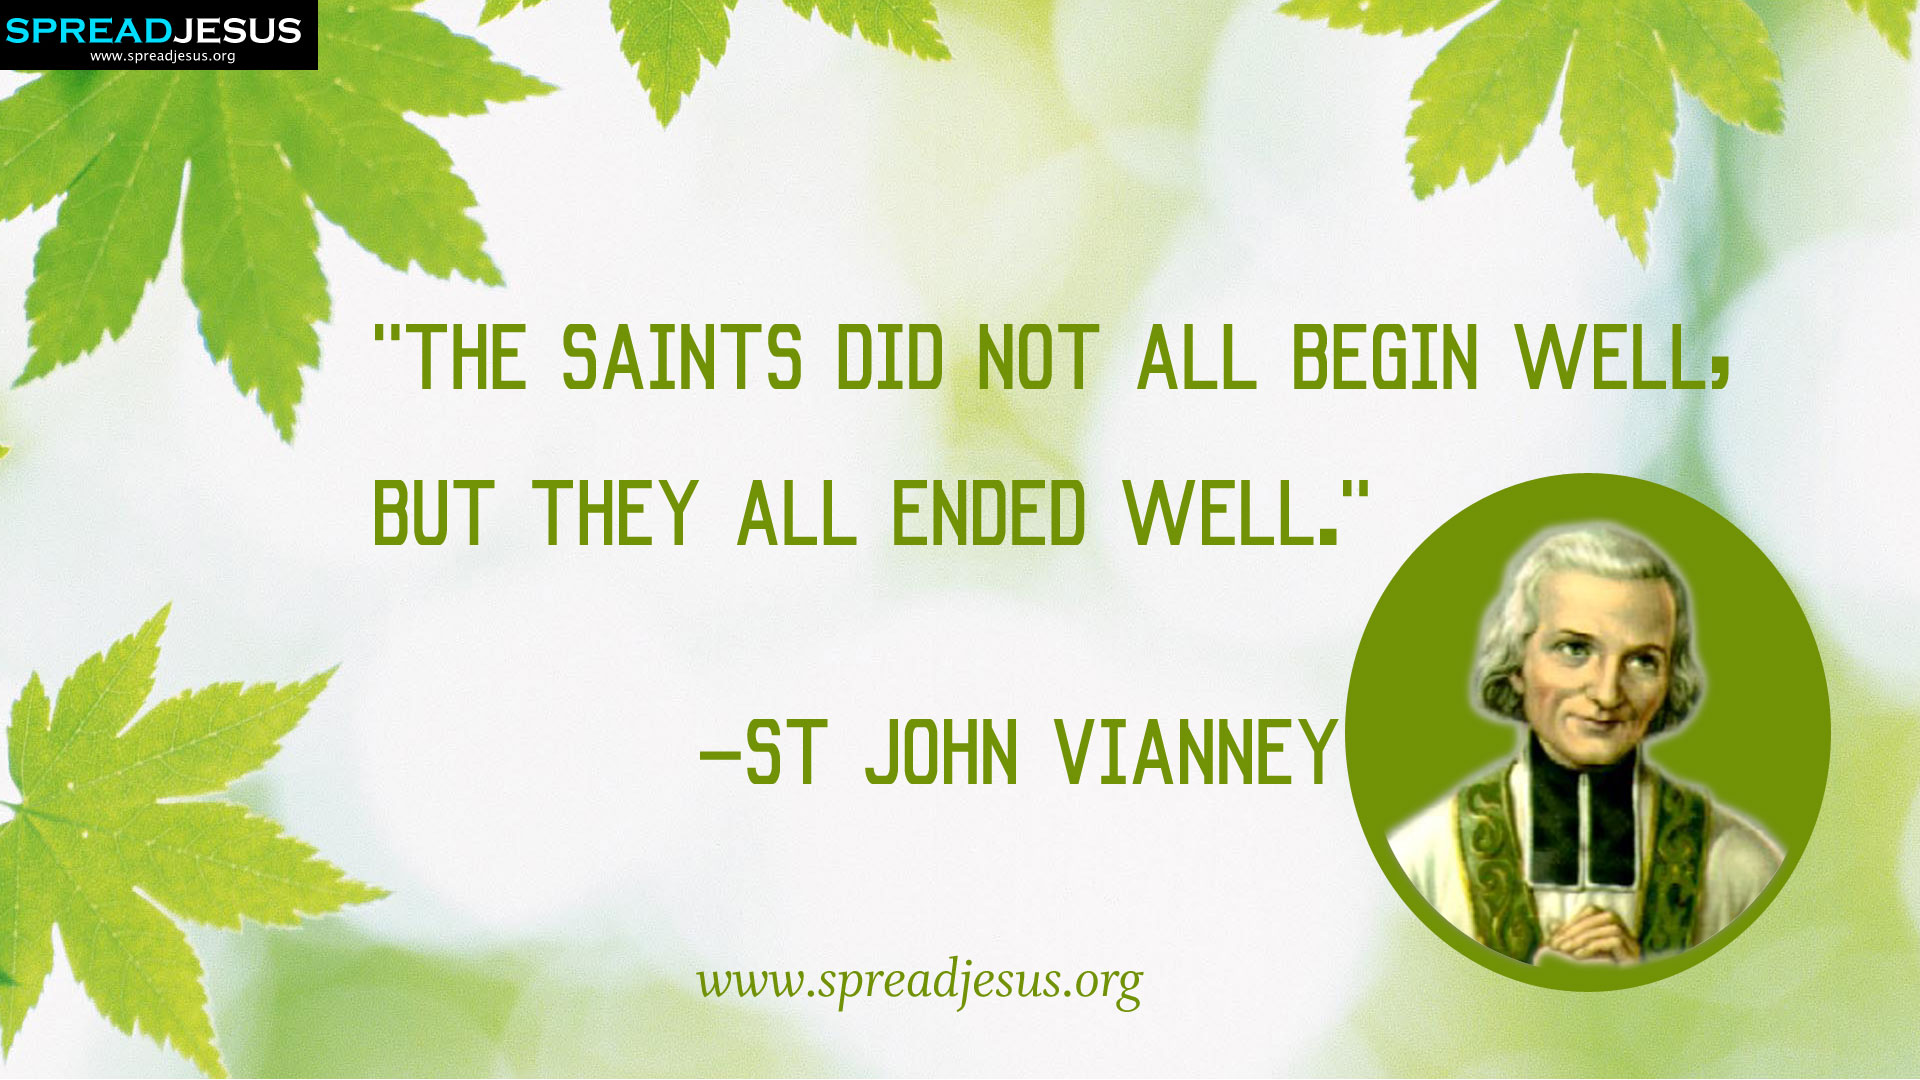 "St John Vianney:St John Vianney QUOTES HD-WALLPAPERS DOWNLOAD:CATHOLIC SAINT QUOTES HD-WALLPAPERS DOWNLOAD-""The saints did not all begin well, but they all ended well.""- St John Vianney-spreadjesus.org"